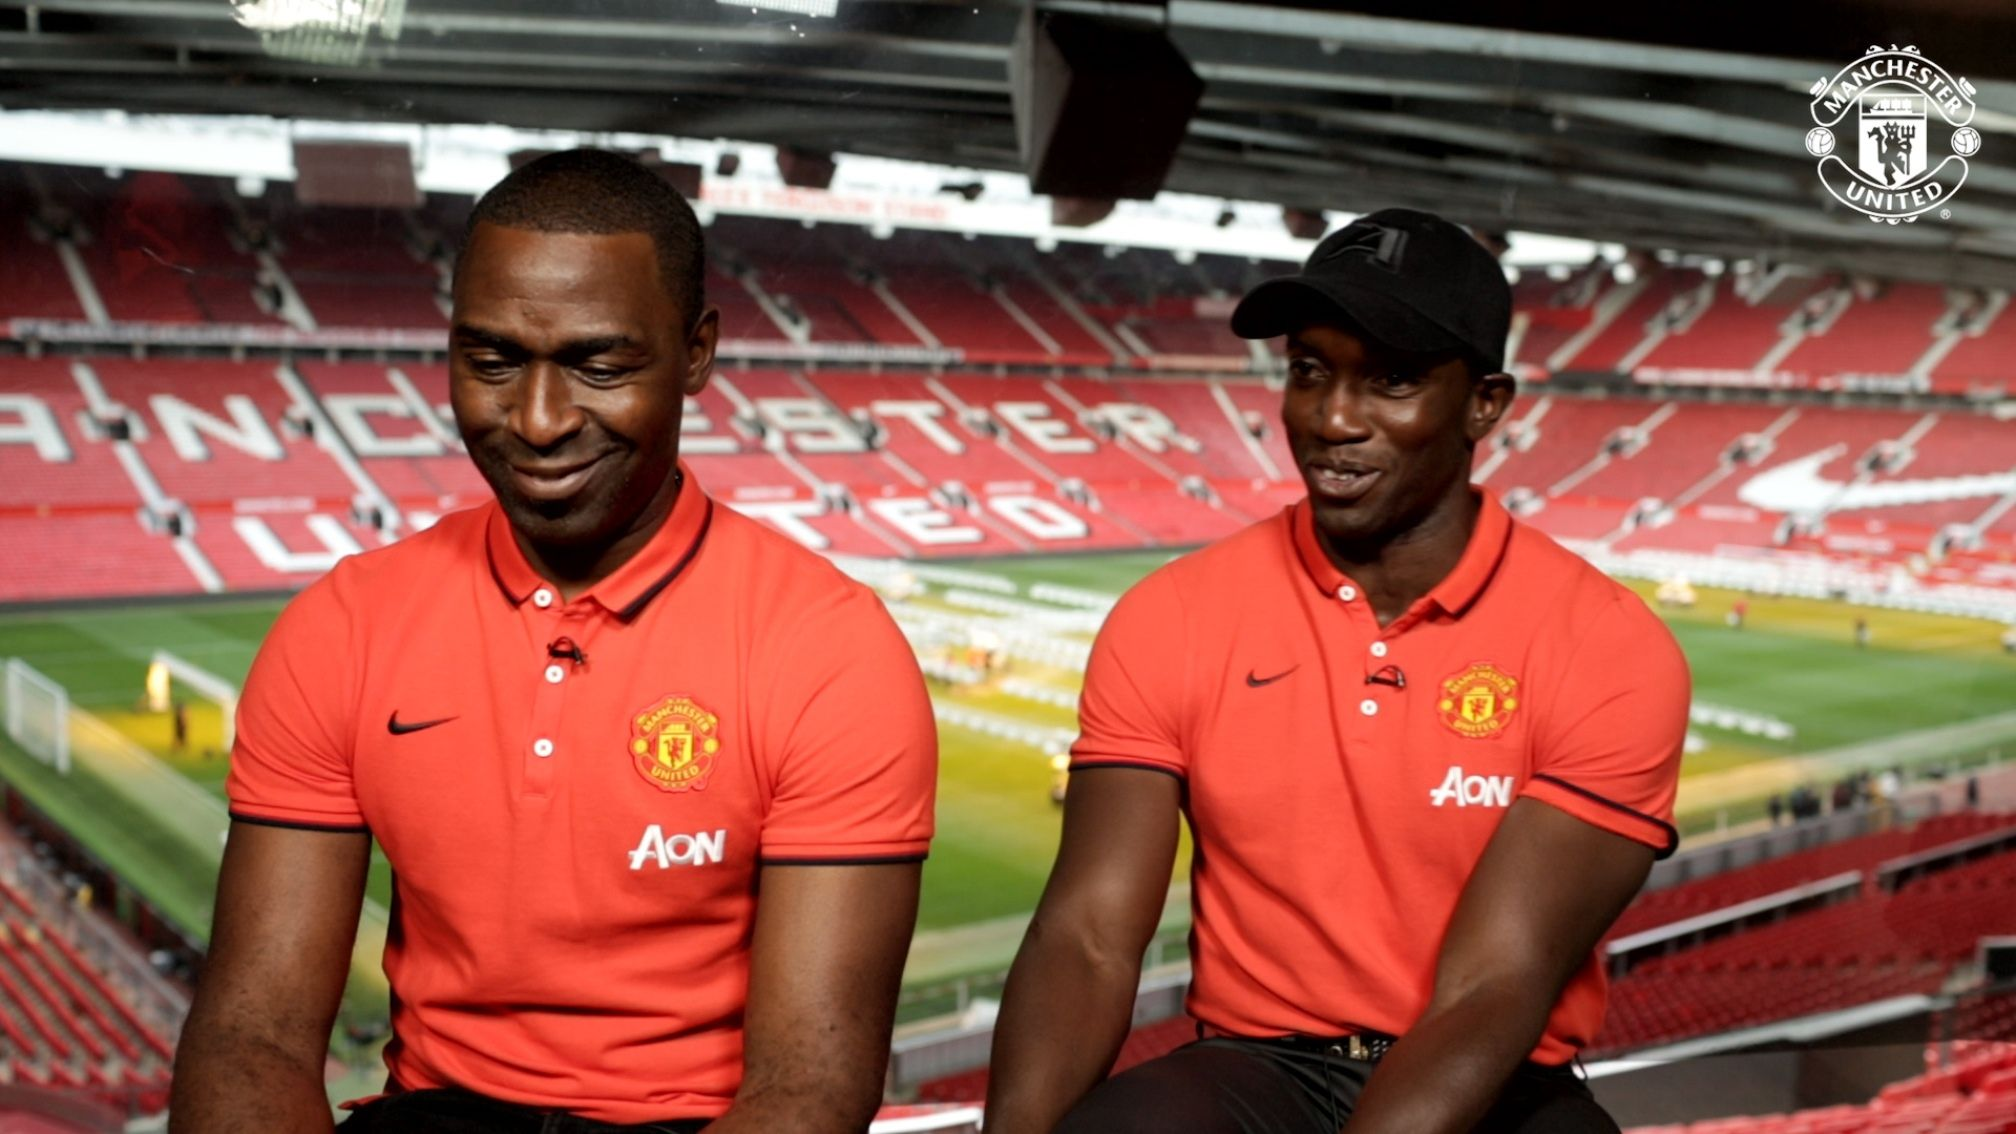 Cole And Yorke Best Form Needed To Beat Arsenal Man Utd News Andy Cole Dwight Yorke